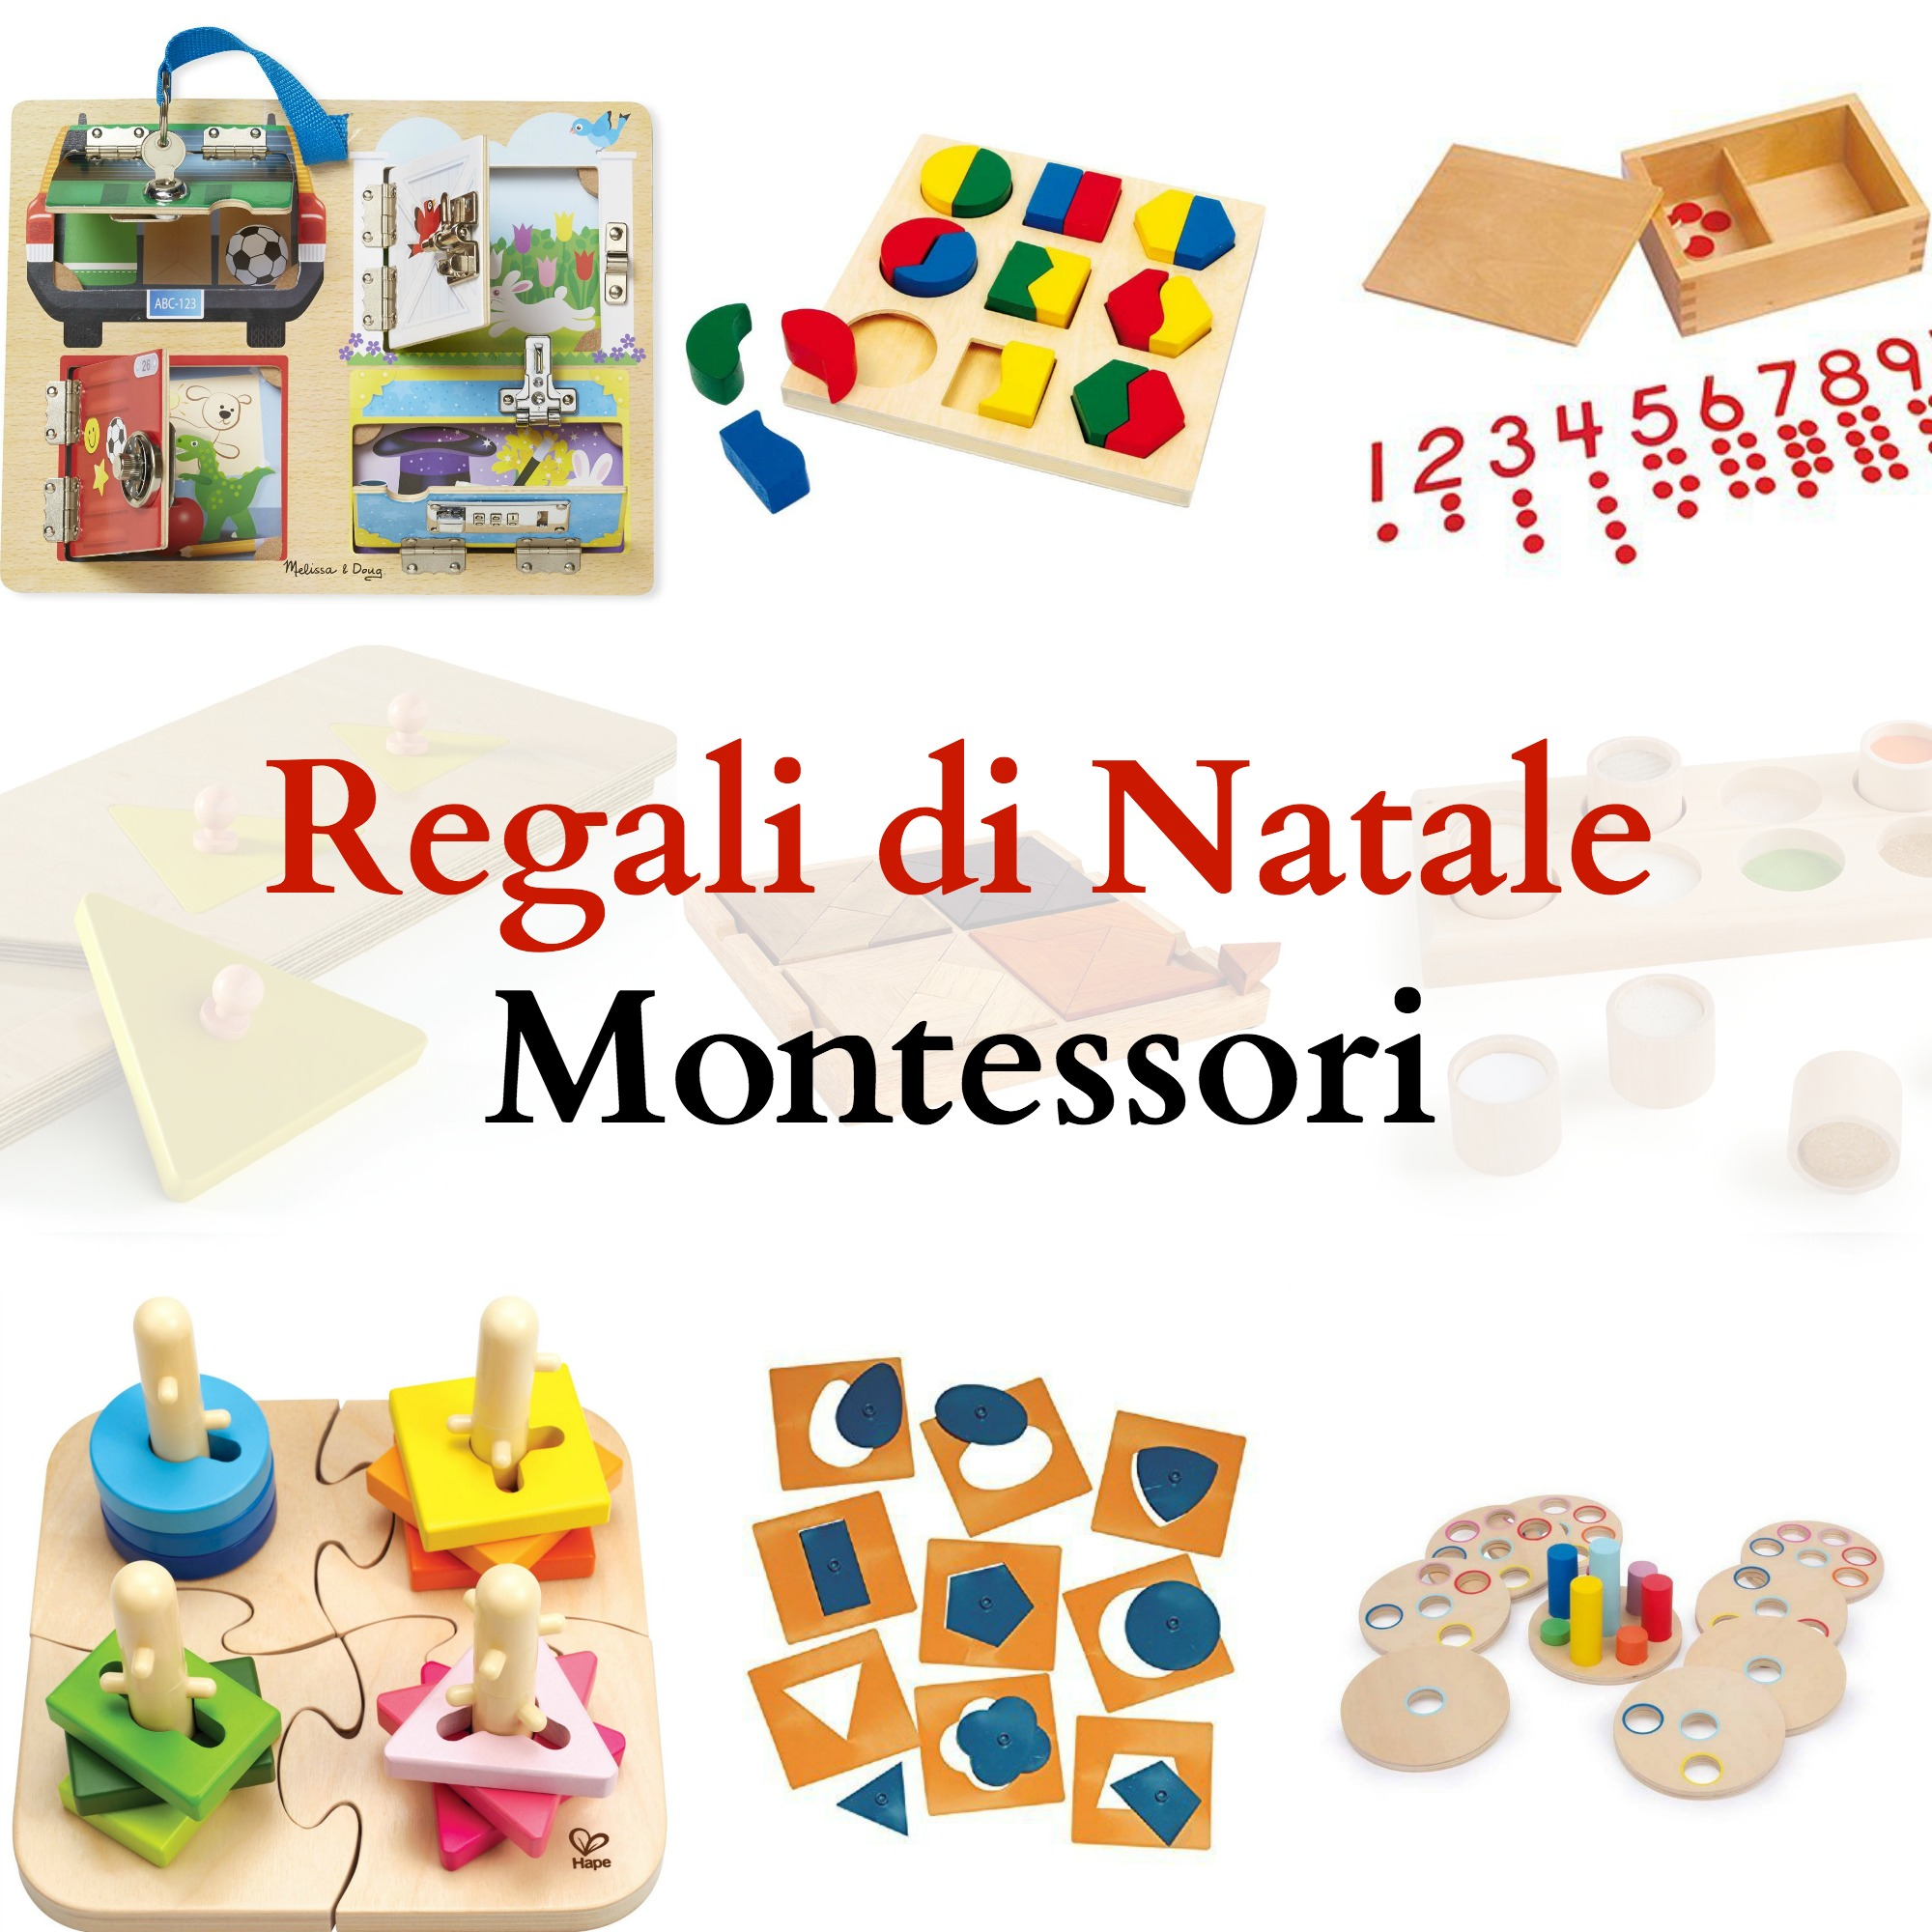 regali-montessori-sq